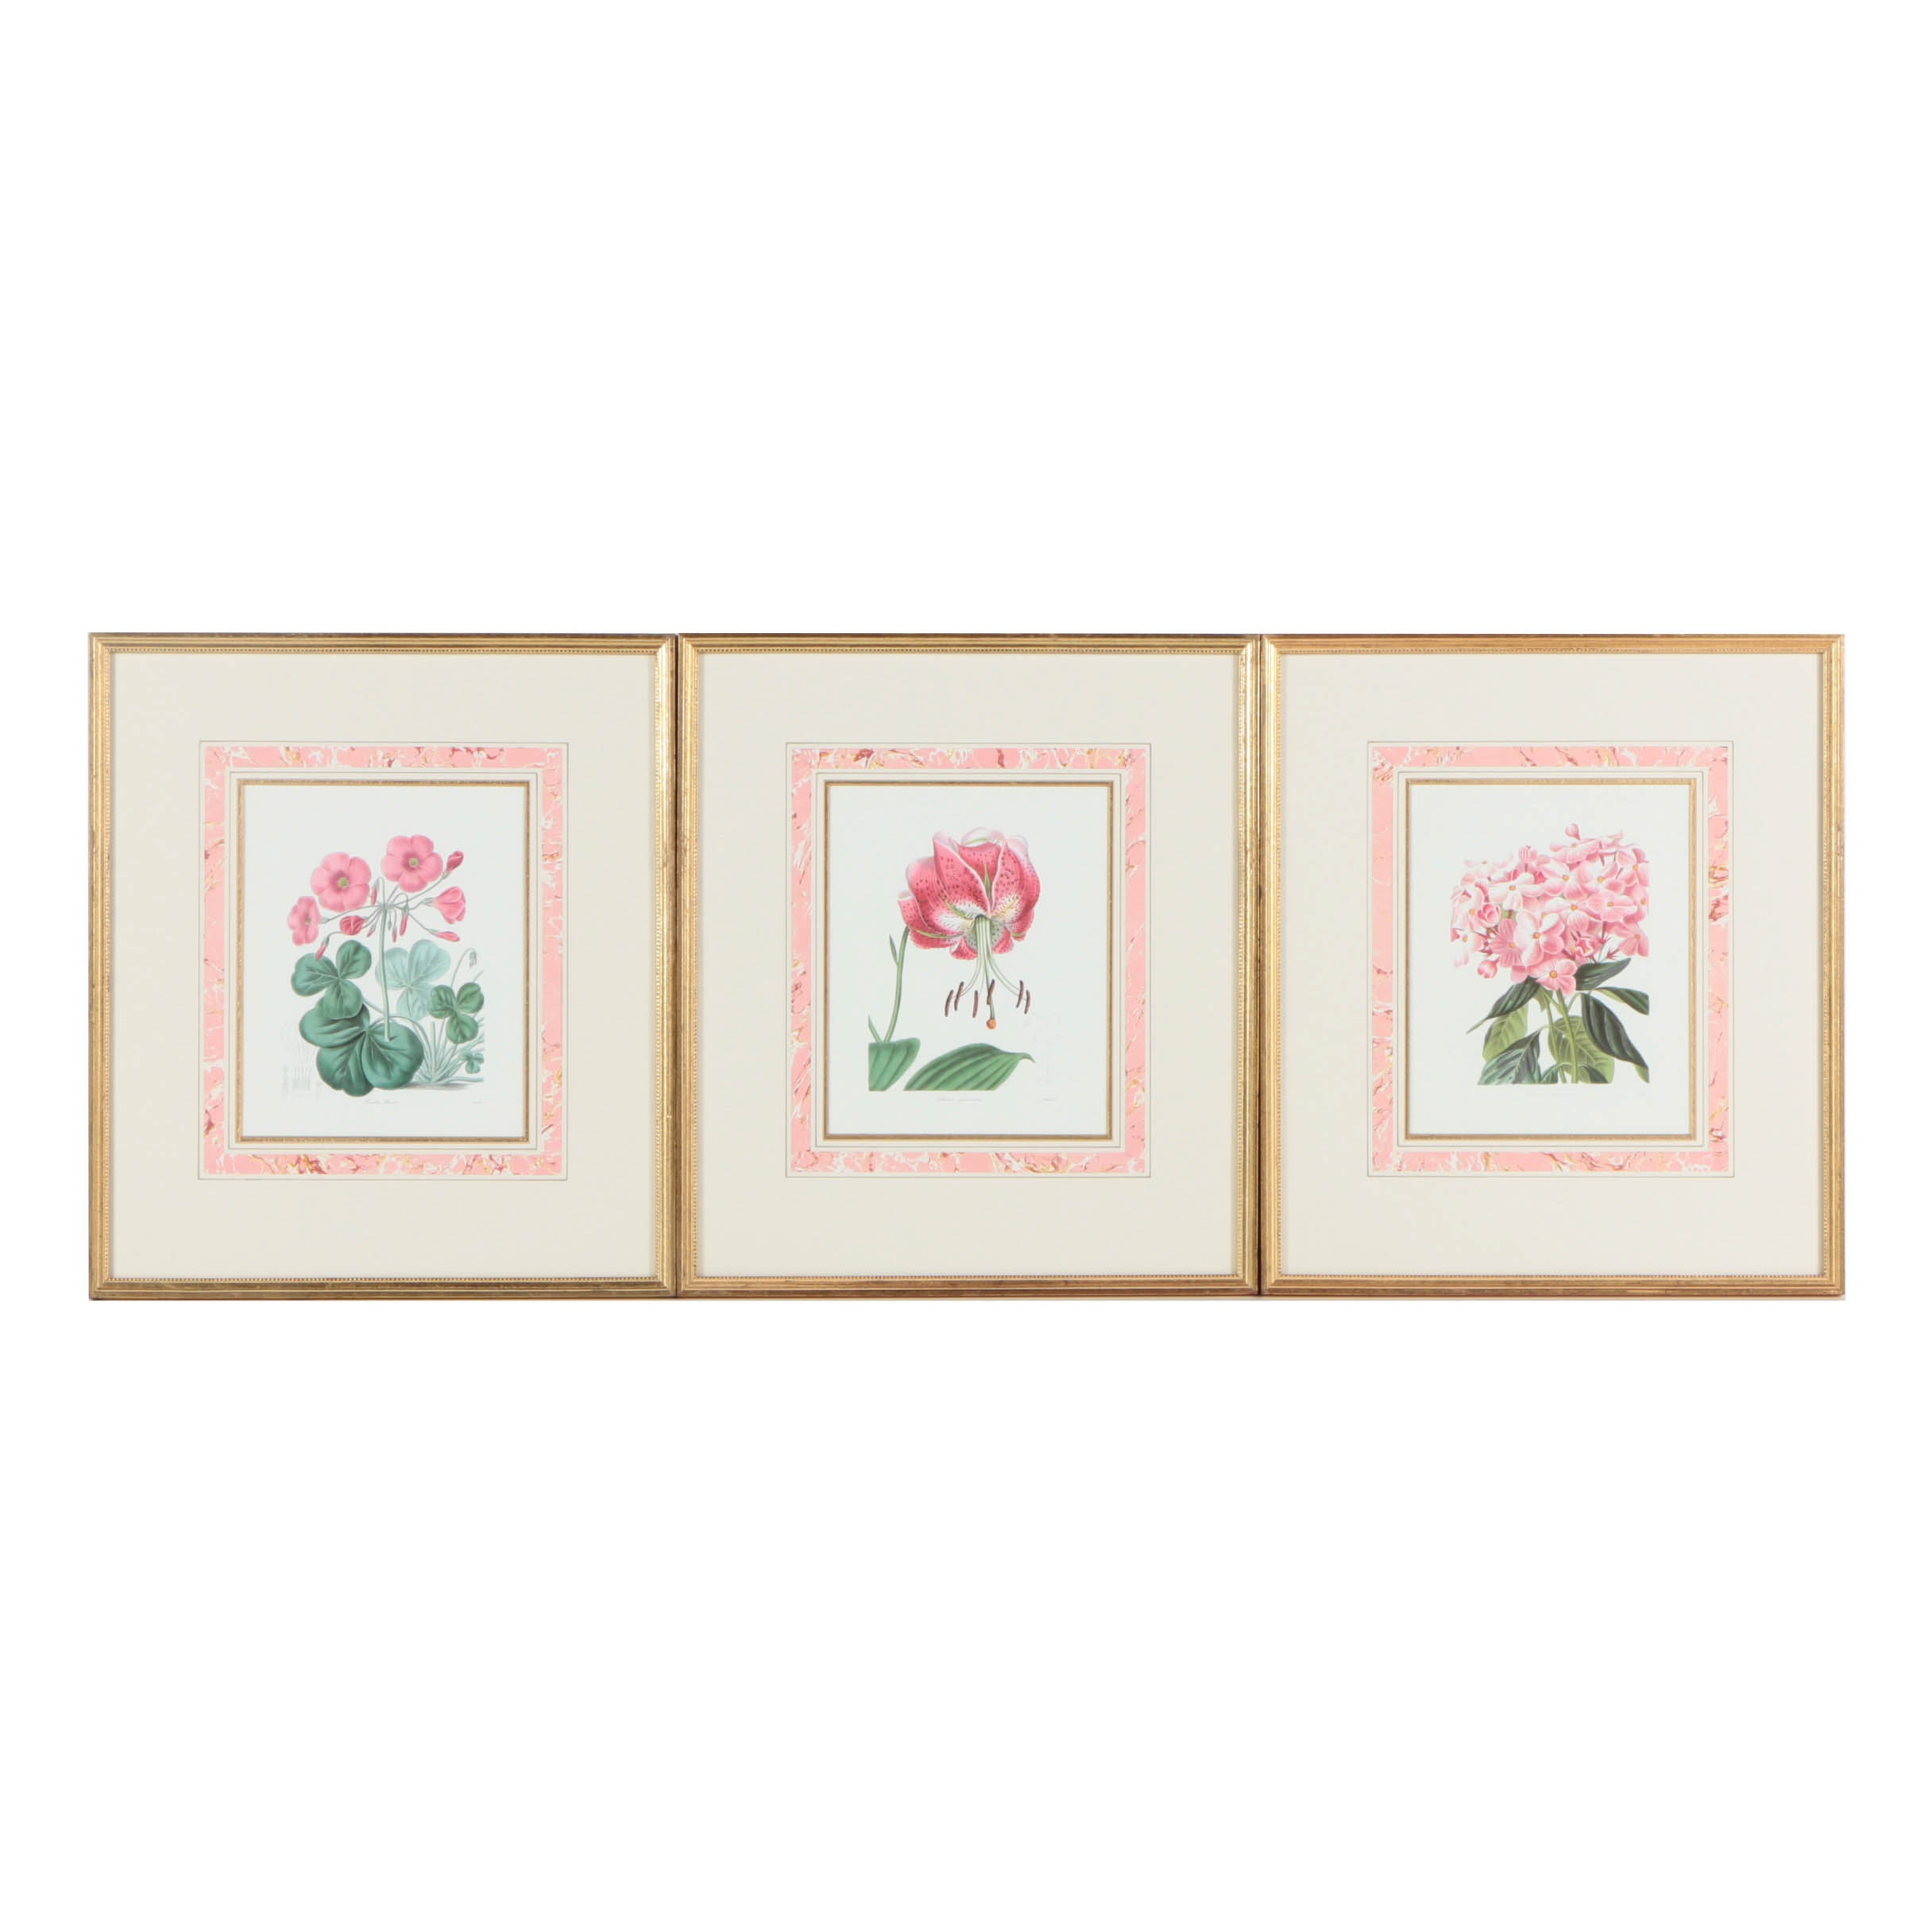 Assorted Reproduction Offset Lithographs on Paper of Botanical Illustrations